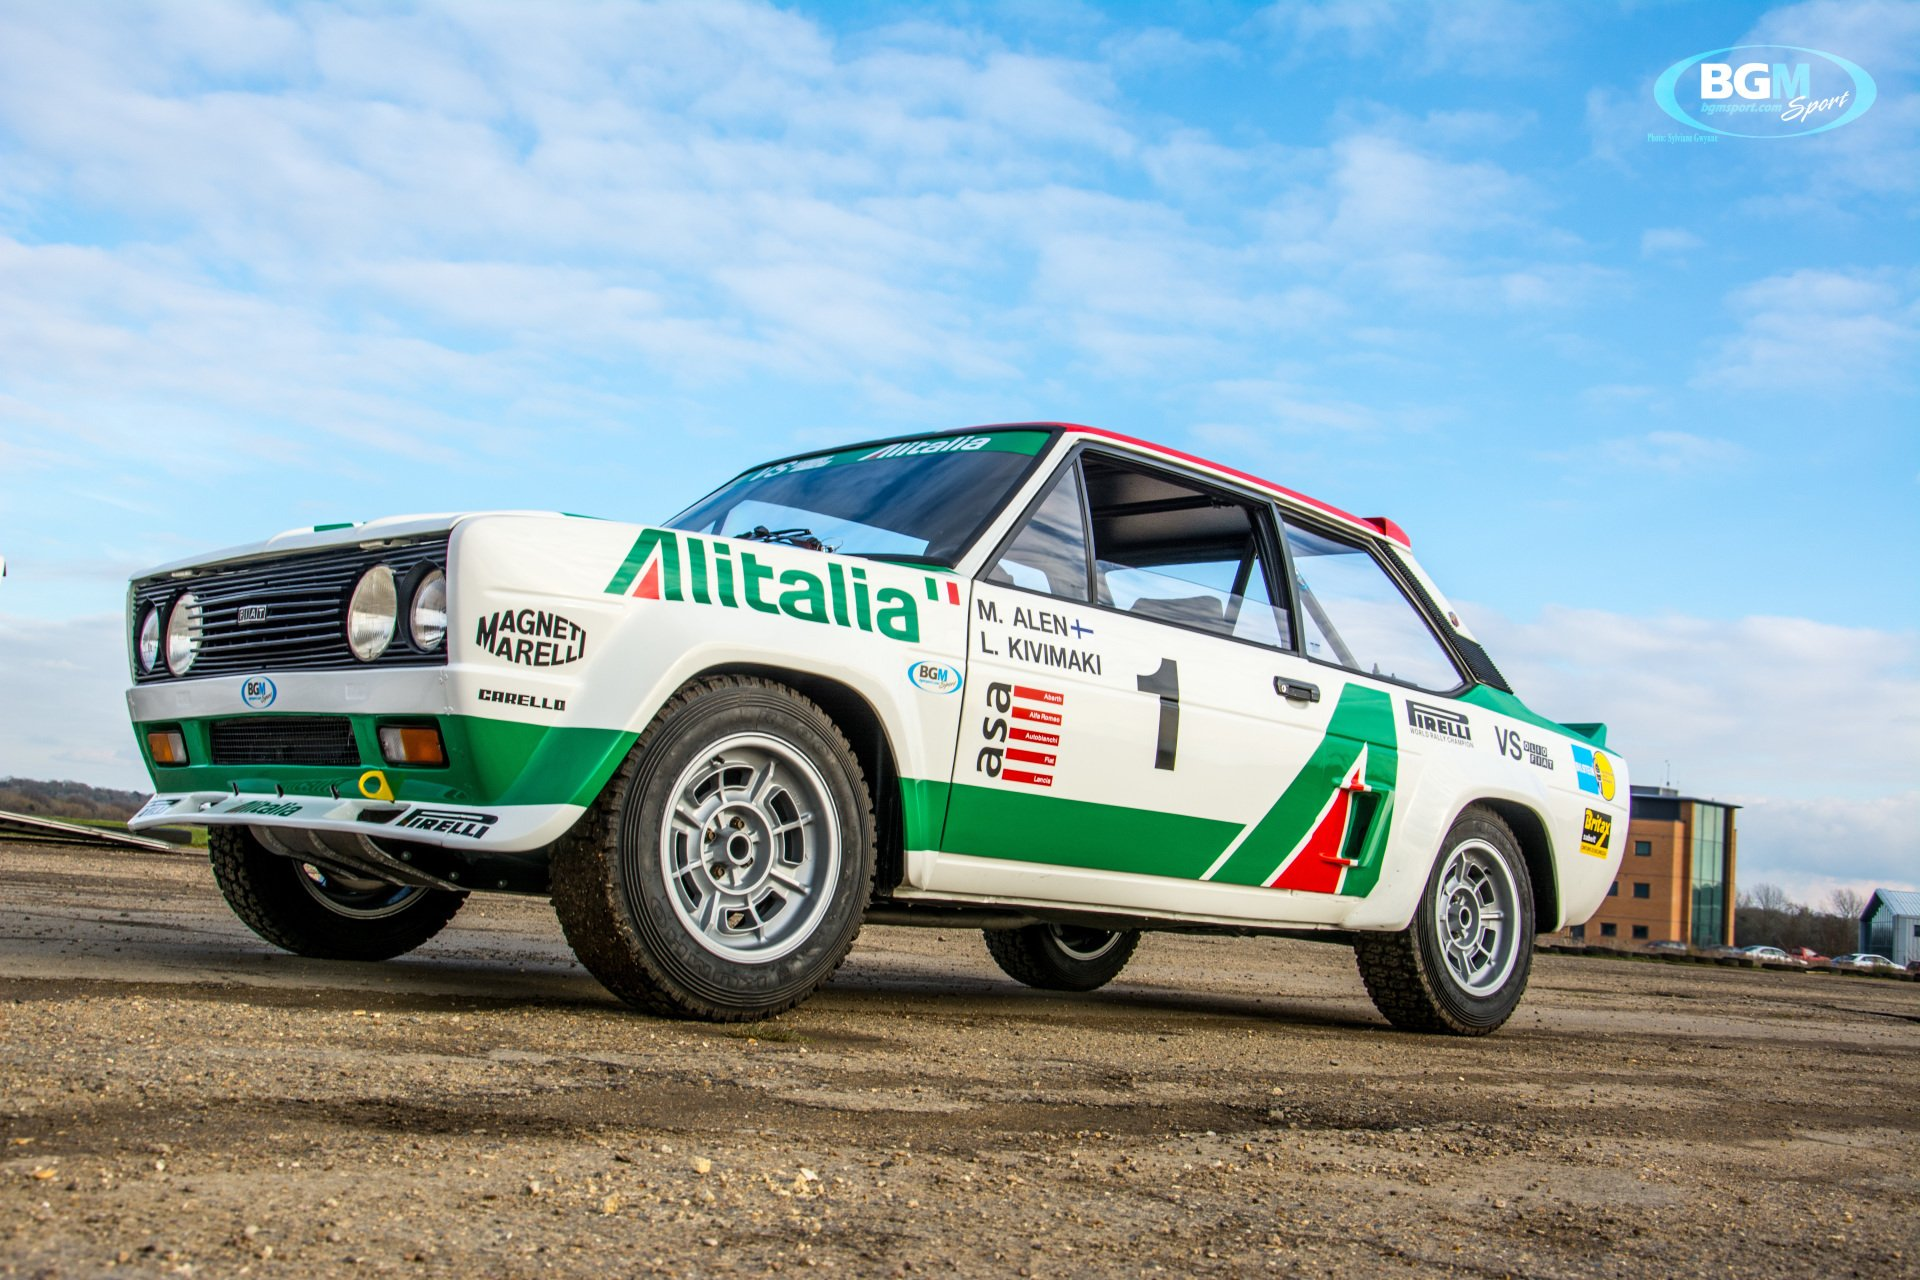 fiat-131-abarth-grp-4-rally-car-42